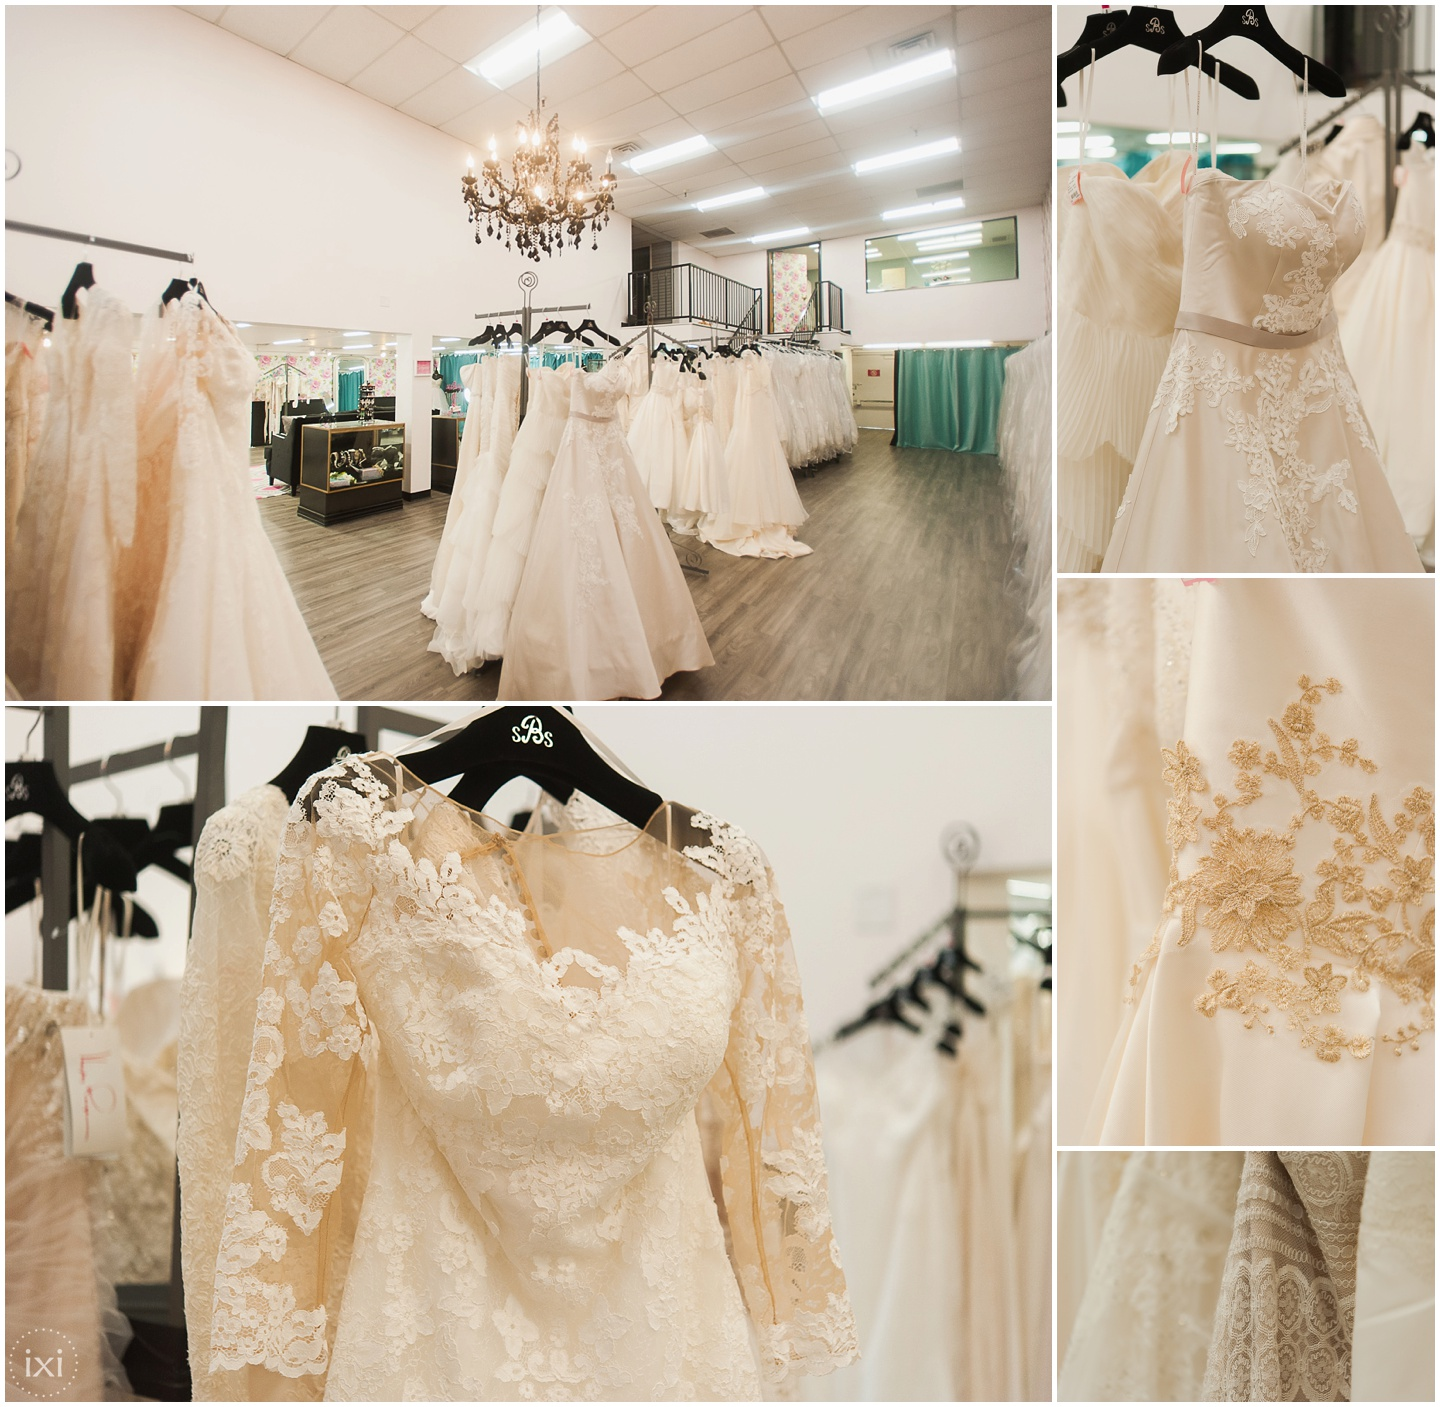 Amazing Deals on Beautiful Designer Wedding Dresses in Sacramento, CA